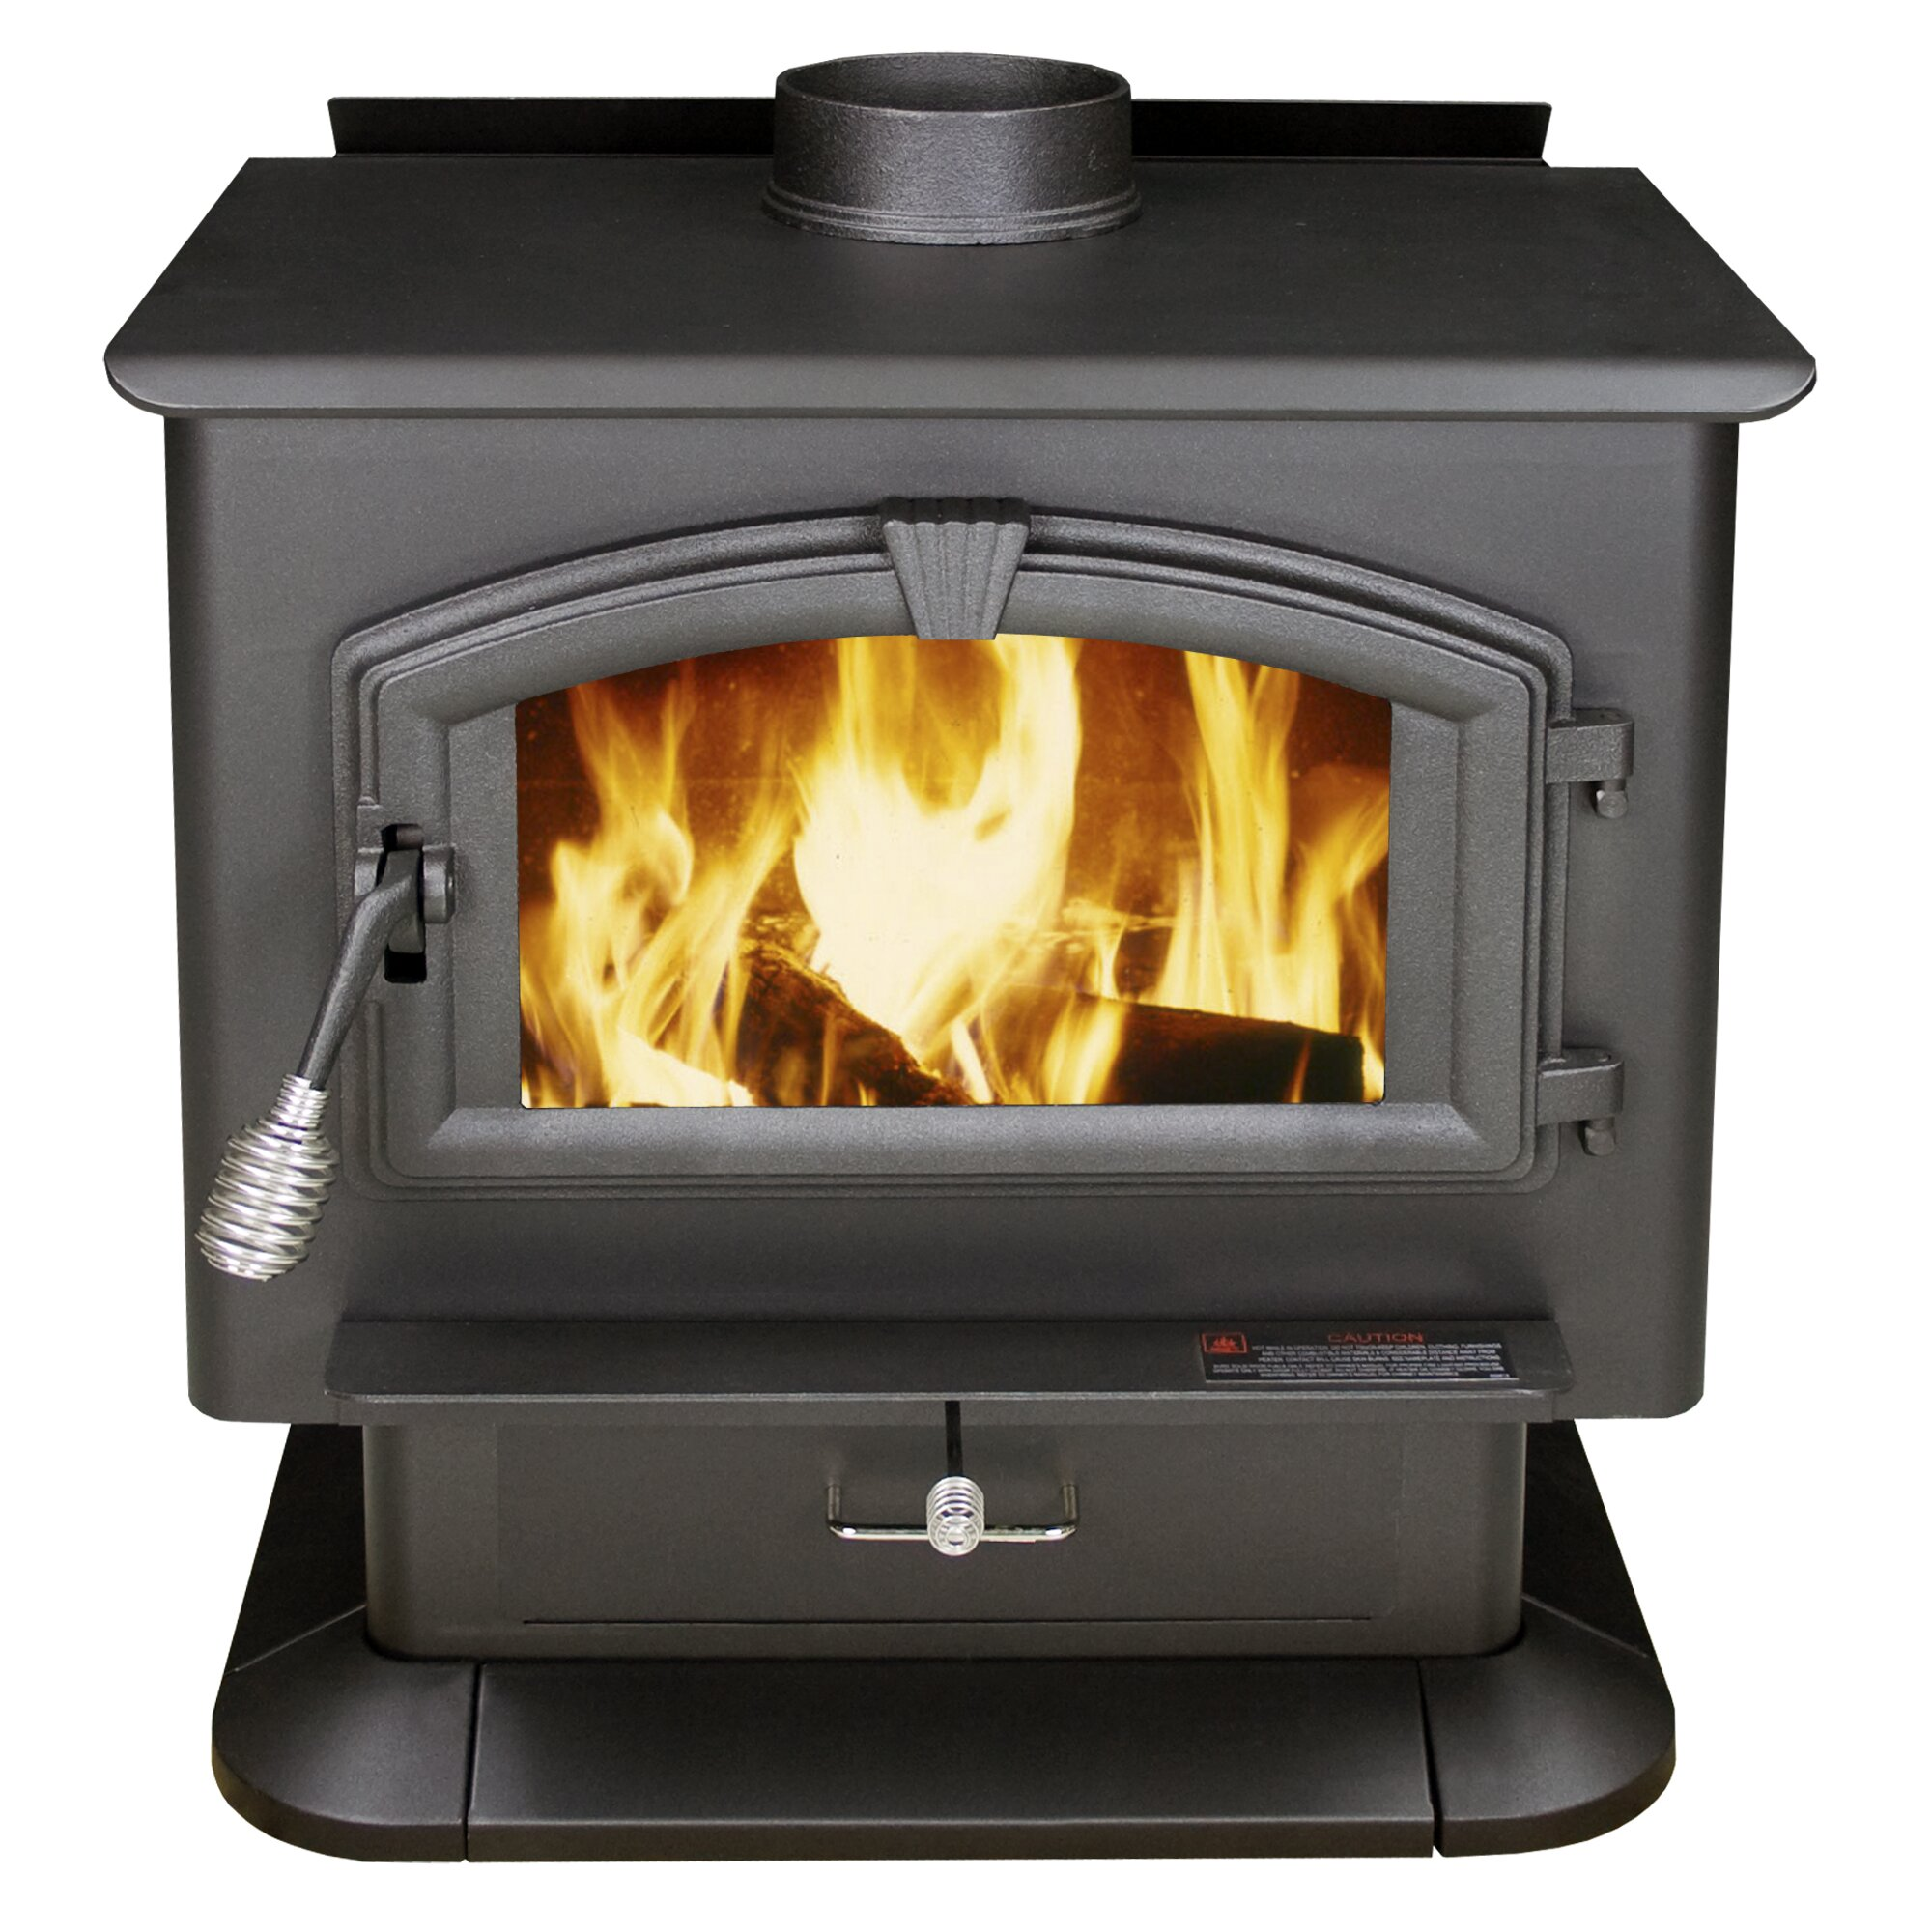 US Stove 3,000 sq. ft. Direct Vent Wood Stove & Reviews | Wayfair